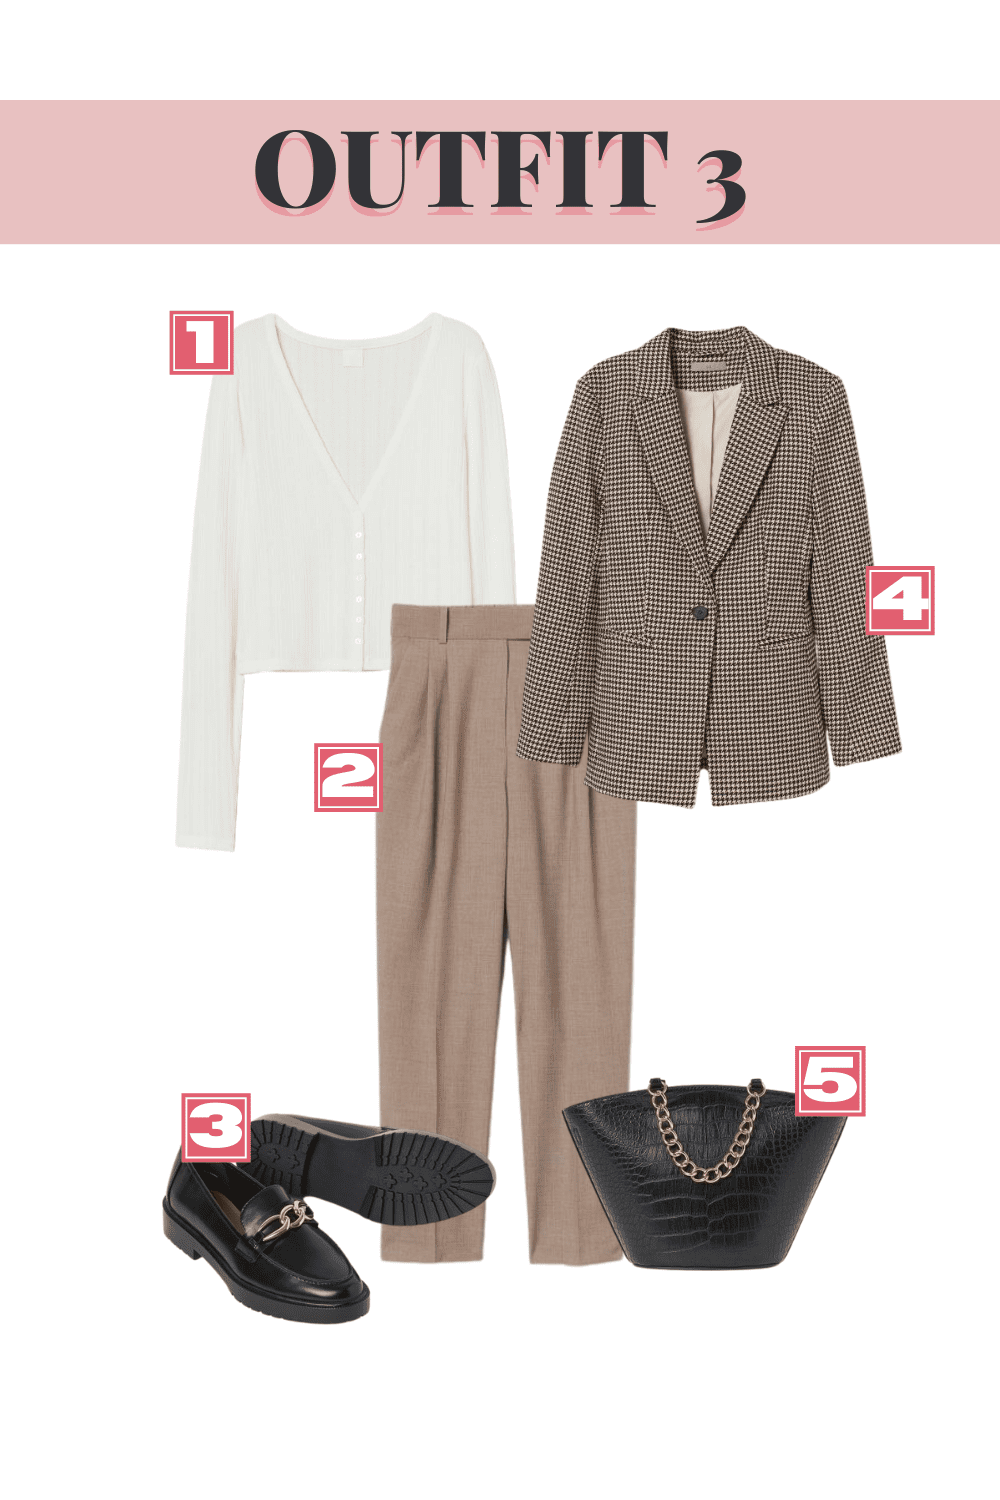 H&M Fall Top Picks - Outfit 3